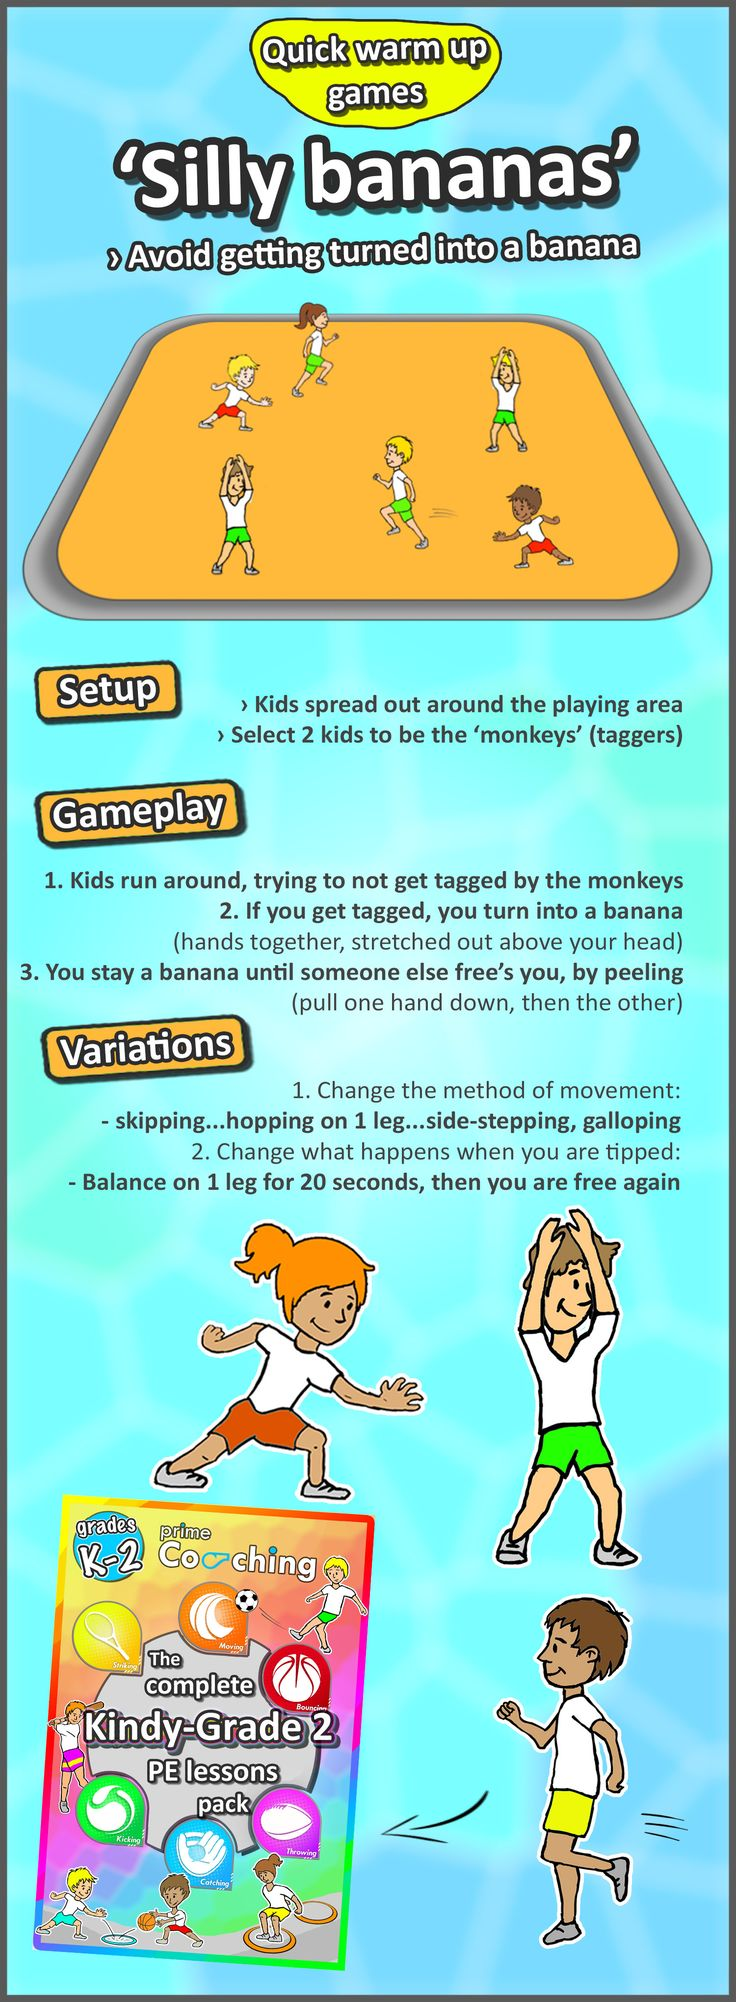 • Silly bananas • A simple but fun tip and tag warm up game for your kids. Try it out, then check out the rest we have!